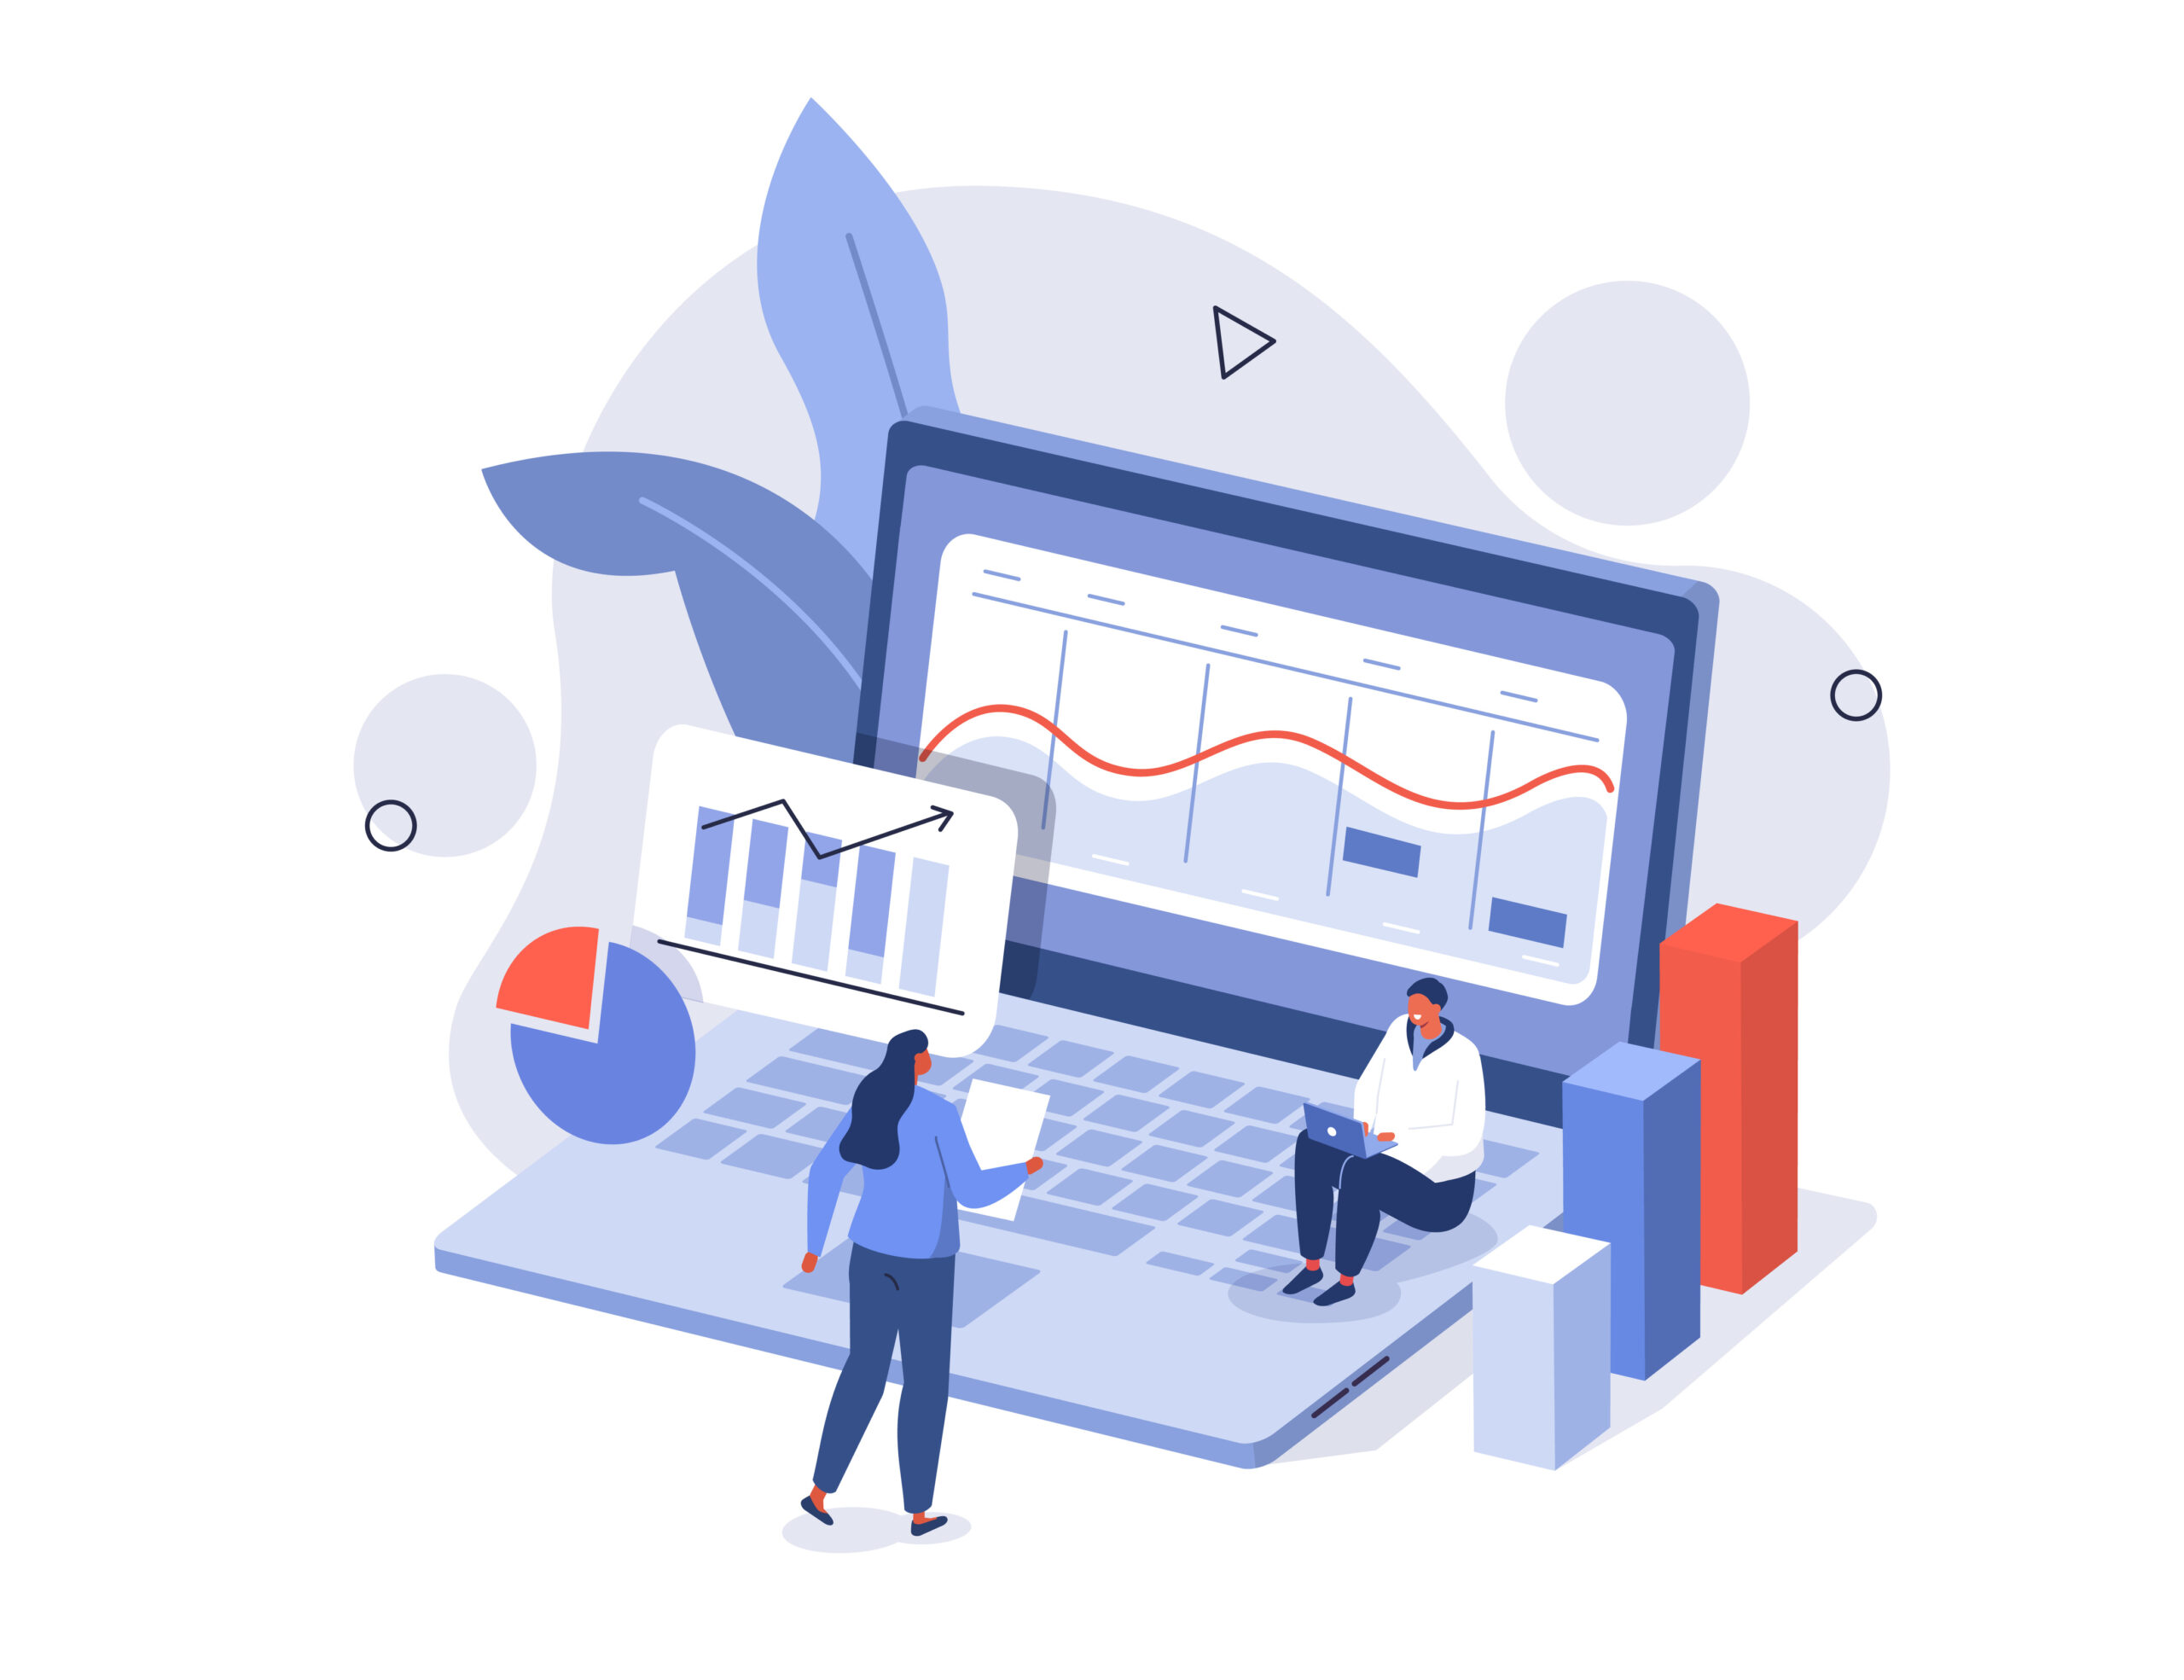 Characters analyzing stock market data and planning investment strategy. People examining financial graphs, charts and diagrams. Stock trading concept. Flat isometric vector illustration isolated.